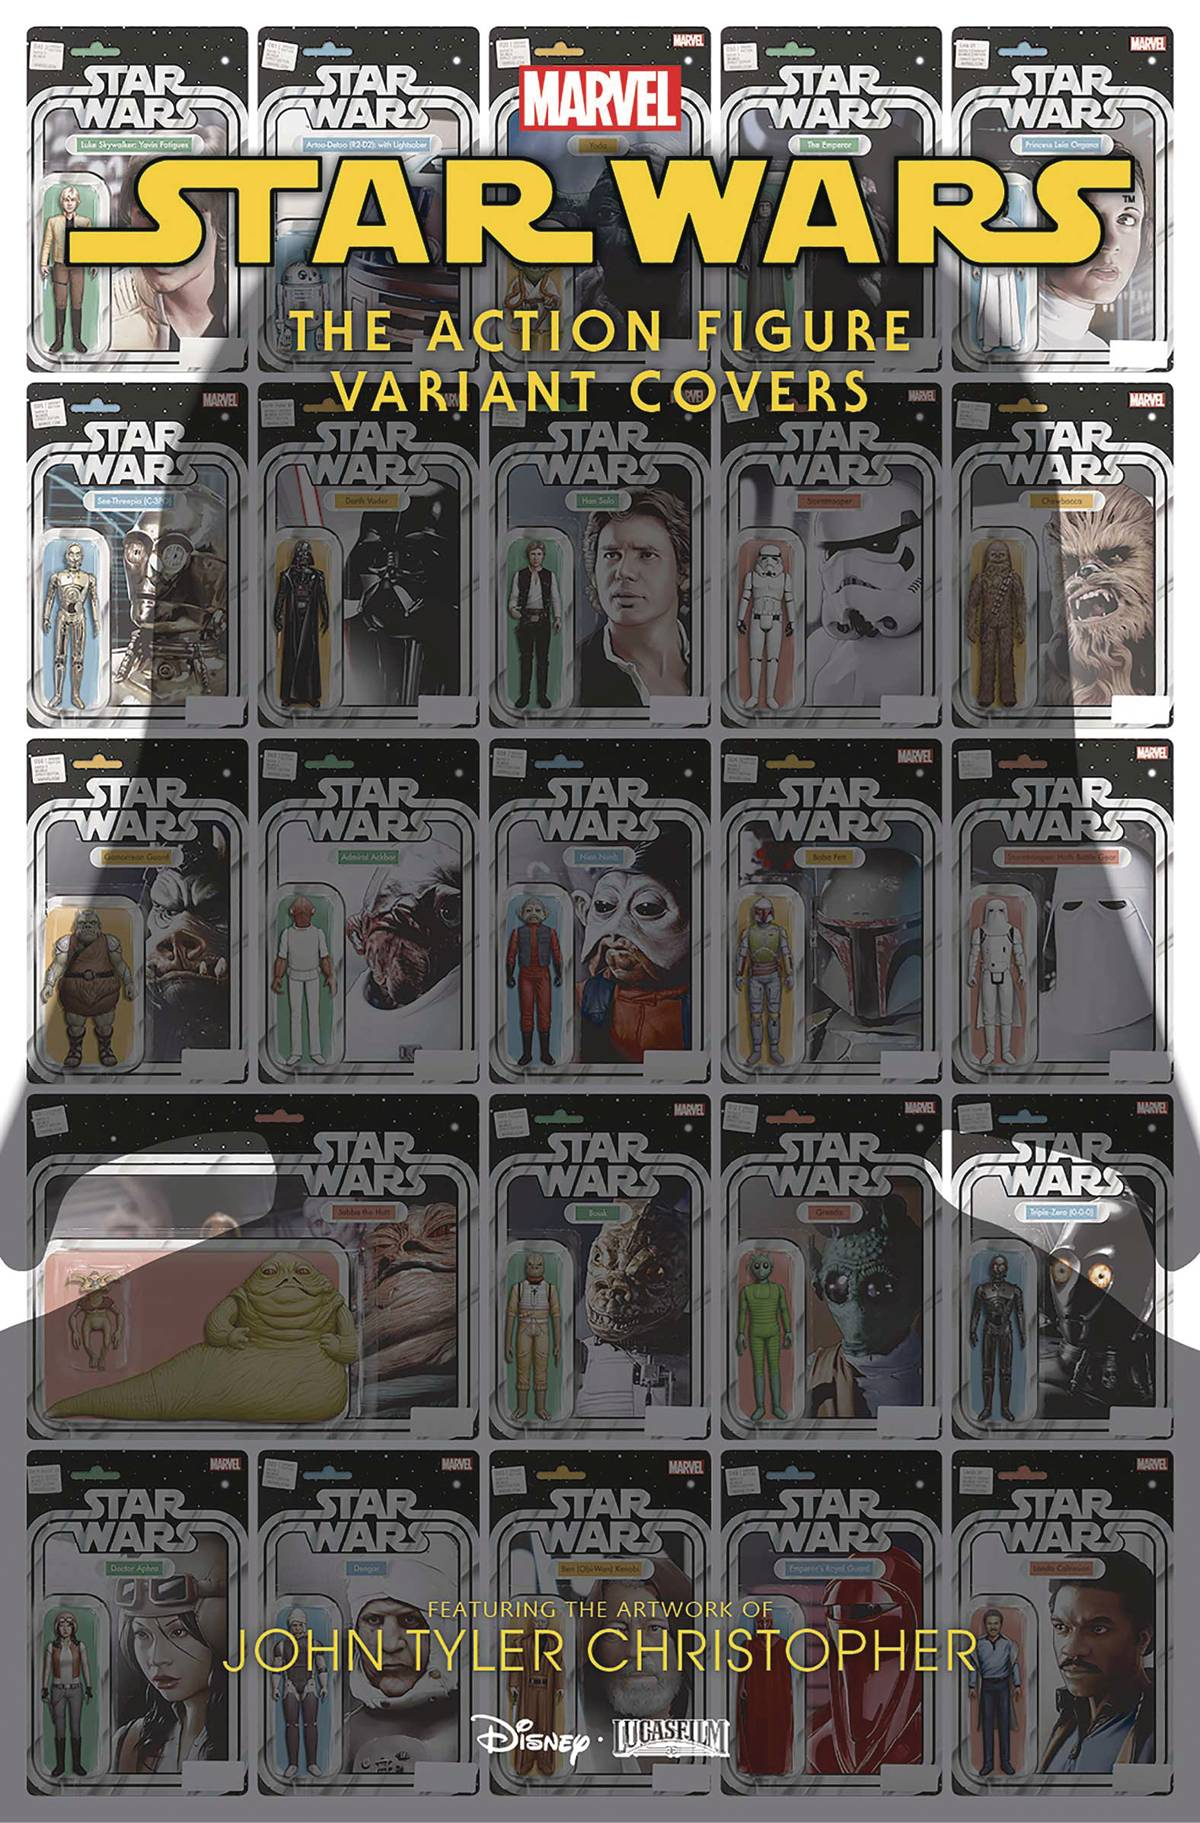 STAR WARS ACTION FIGURE VARIANT COVERS